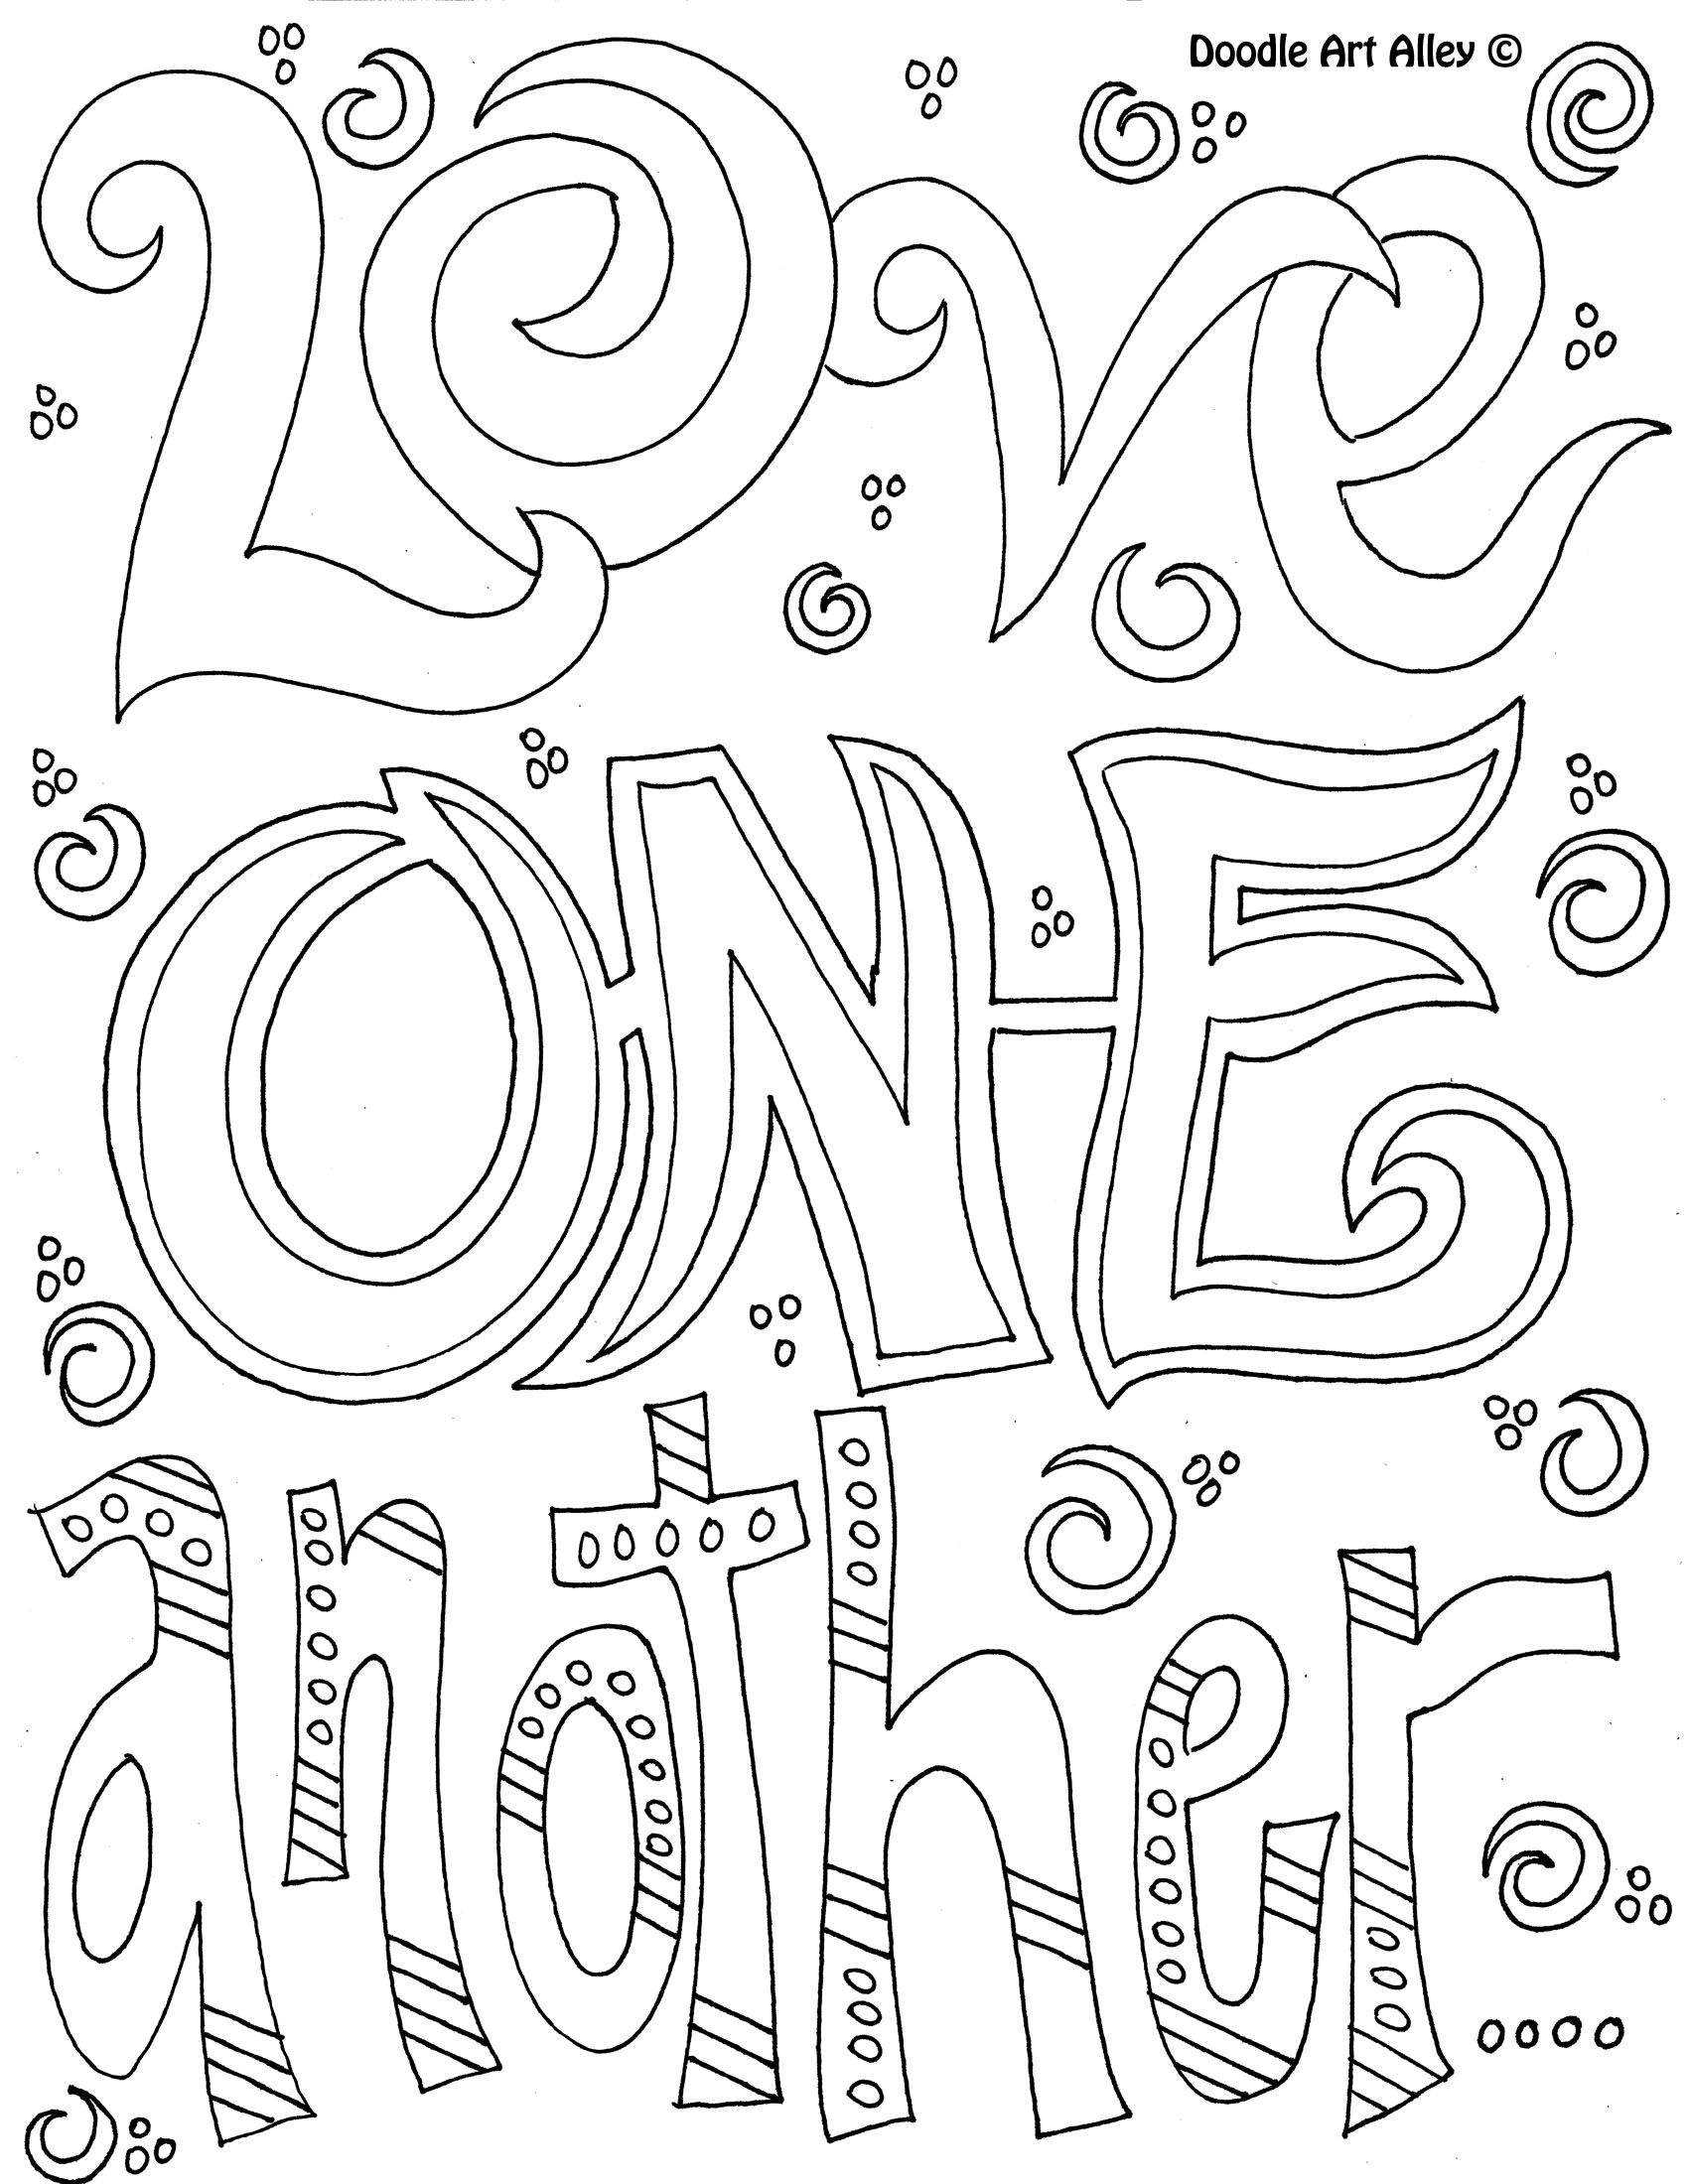 Doodle Coloring Page Love One Another Bible Coloring Pages Quote Coloring Pages Love Coloring Pages